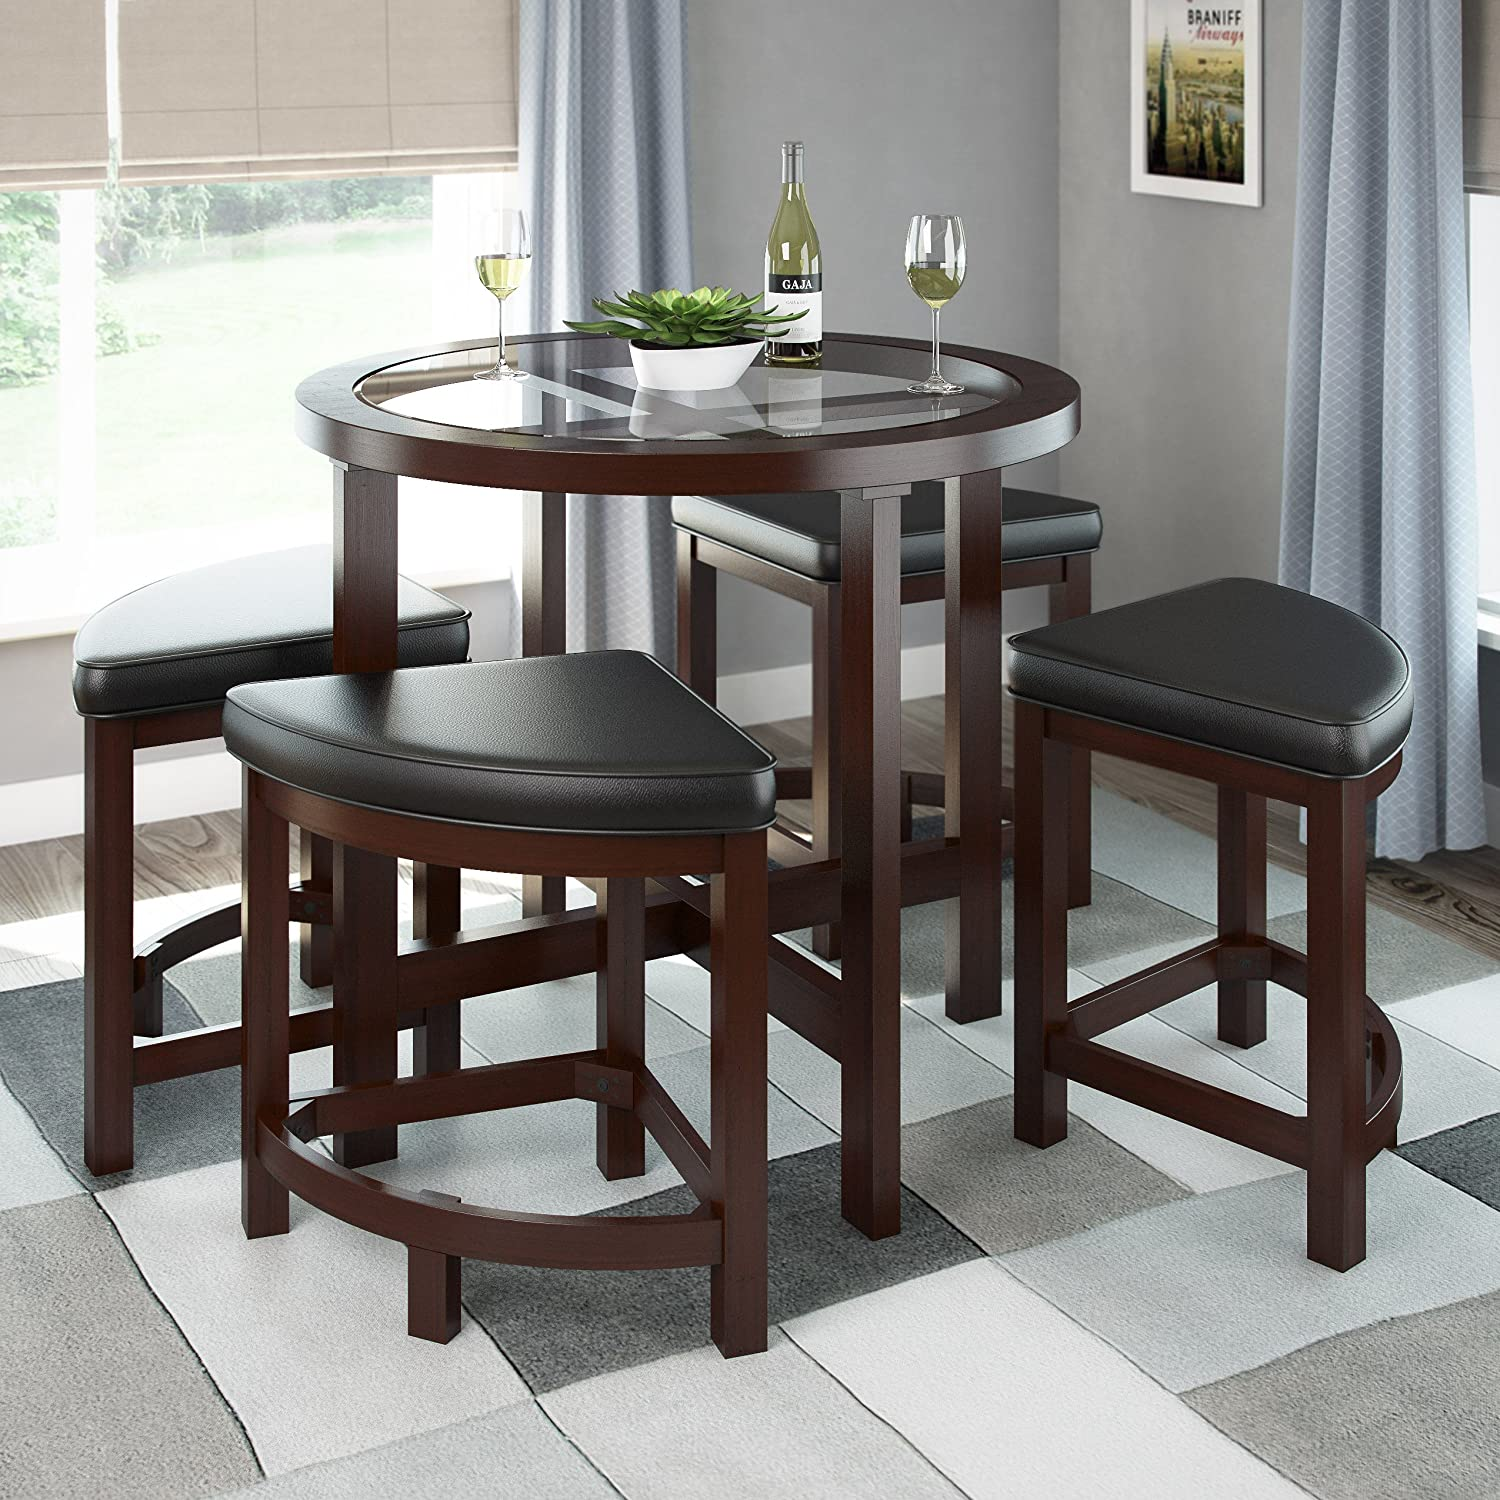 High Quality Amazon.com   CorLiving DBG 699 K Belgrove Dark Espresso Stained Dining Table  With 4 Stools   Tables